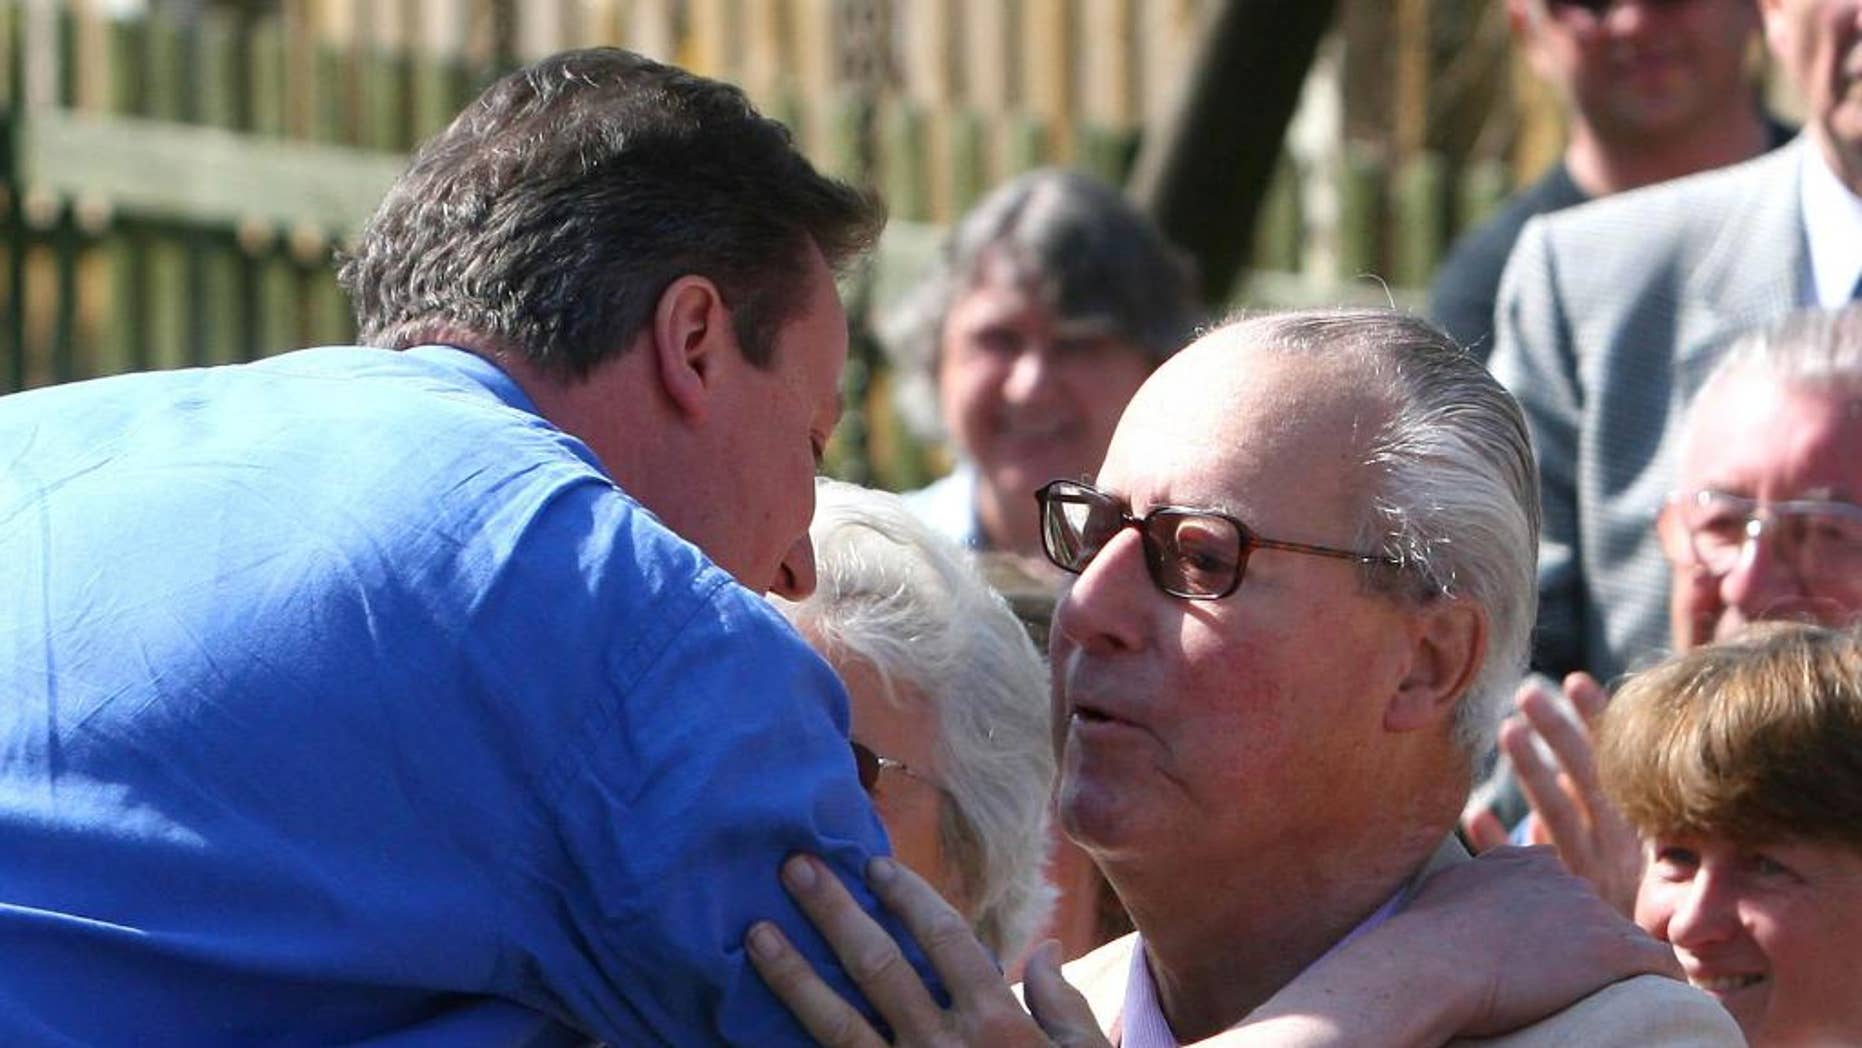 FILE - This is a  March 18, 2010 file photo of  Britain's Prime Minister David Cameron, left, as he  greets his father Ian Cameron, in Swindon England. British Prime Minister David Cameron was under pressure Tuesday April 4, 2016 to crack down on offshore tax havens, after a leak of millions of documents disclosed details of the asset-hiding arrangements of wealthy people including his late father. The Guardian newspaper revealed in 2012 that Ian Cameron, who died in 2010, used a Panamanian fund and other offshore investments to help shield investments from U.K. tax.  (Johnny Green/PA, File via AP) UNITED KINGDOM OUT